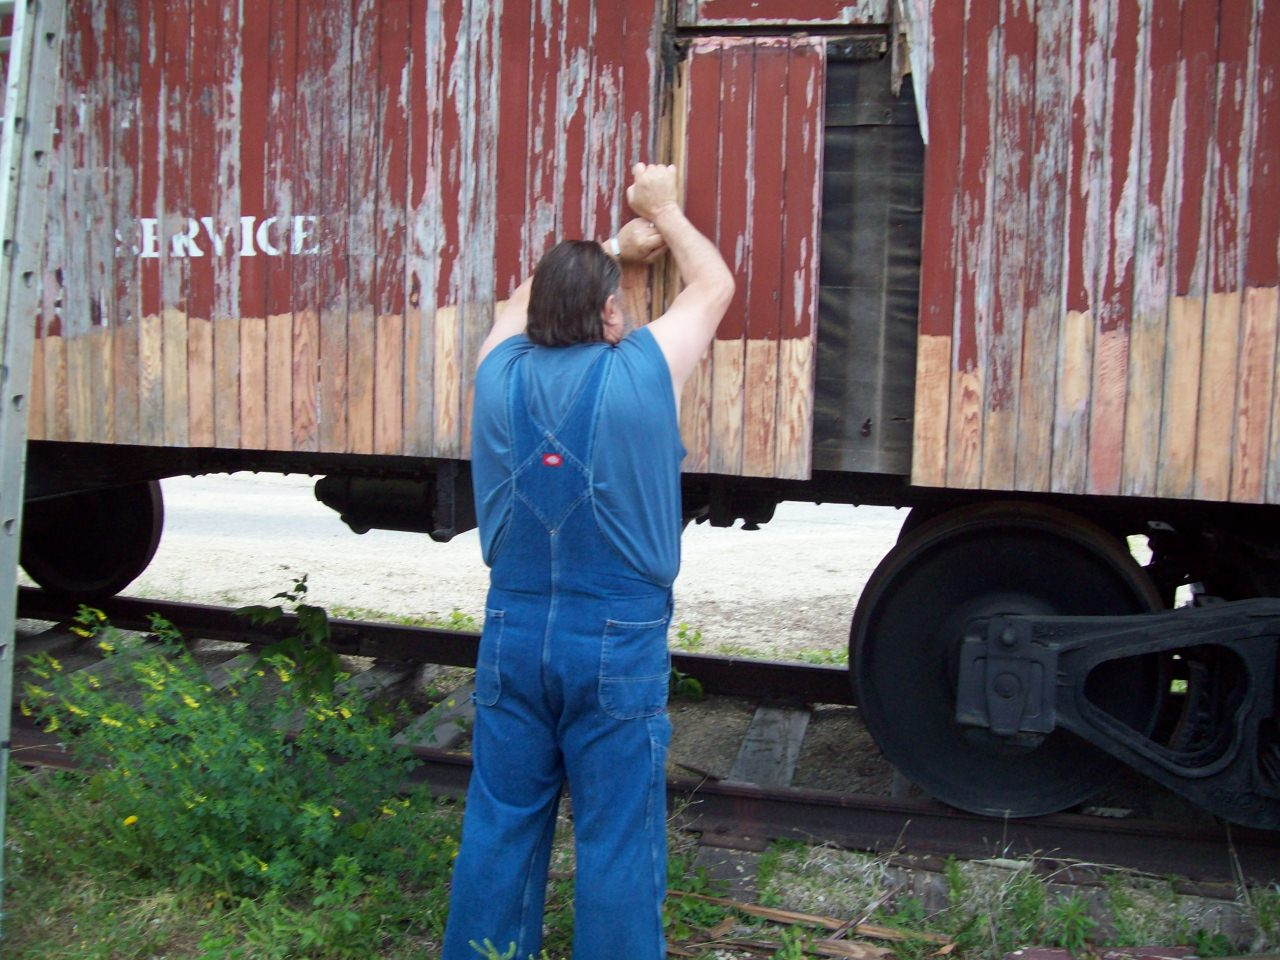 Gene Parrish tackling the task of scraping away the old paint.